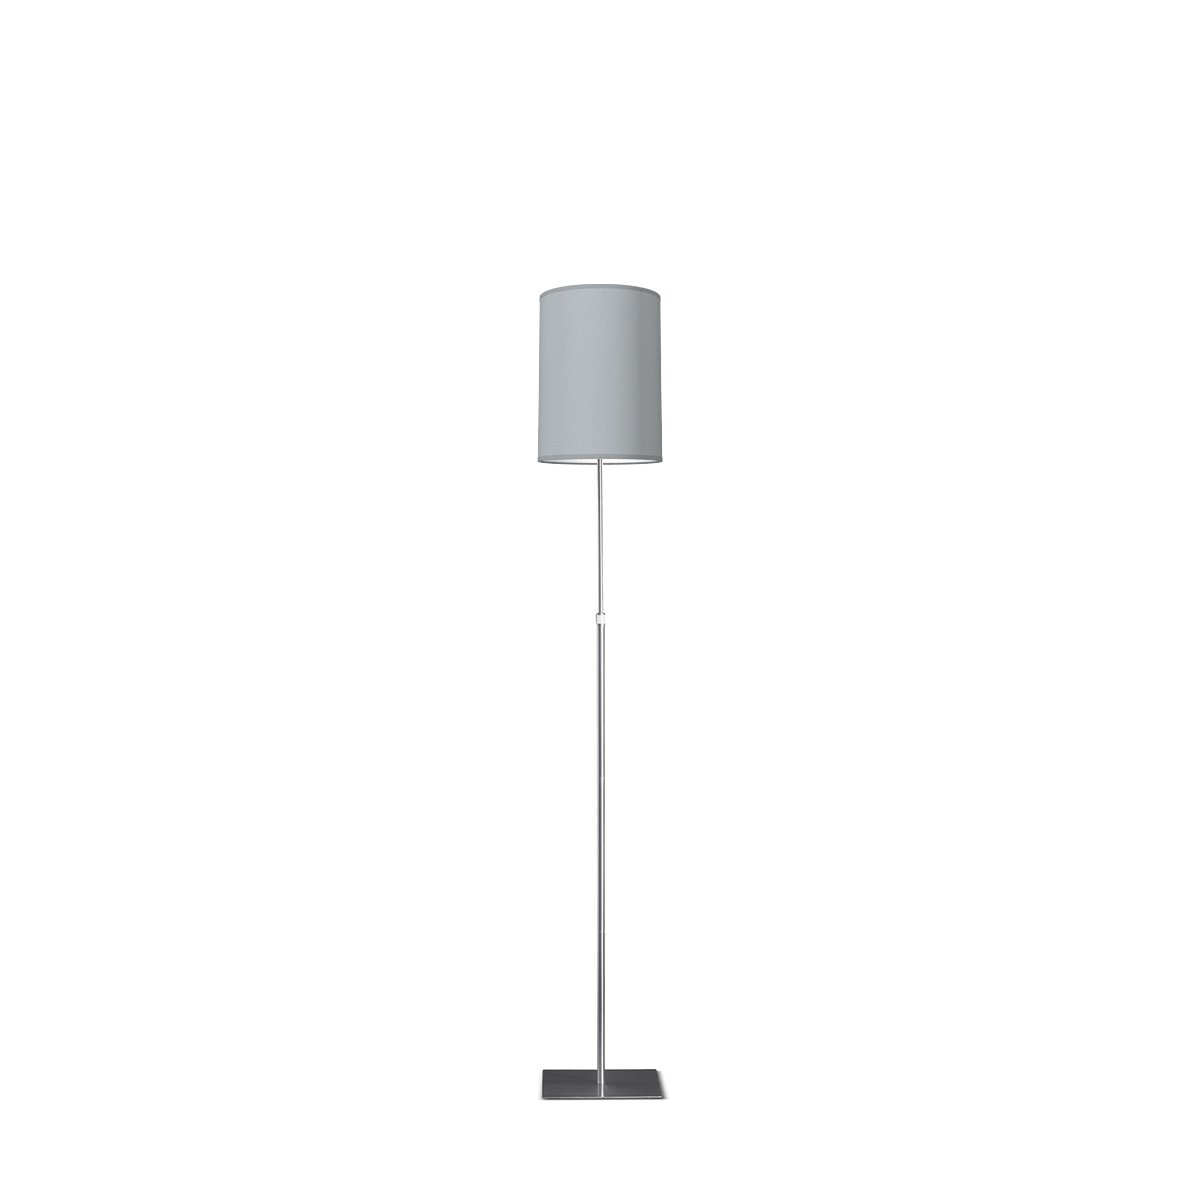 HOME SWEET HOME vloerlamp bobo tube Ø 25 cm - Light grey